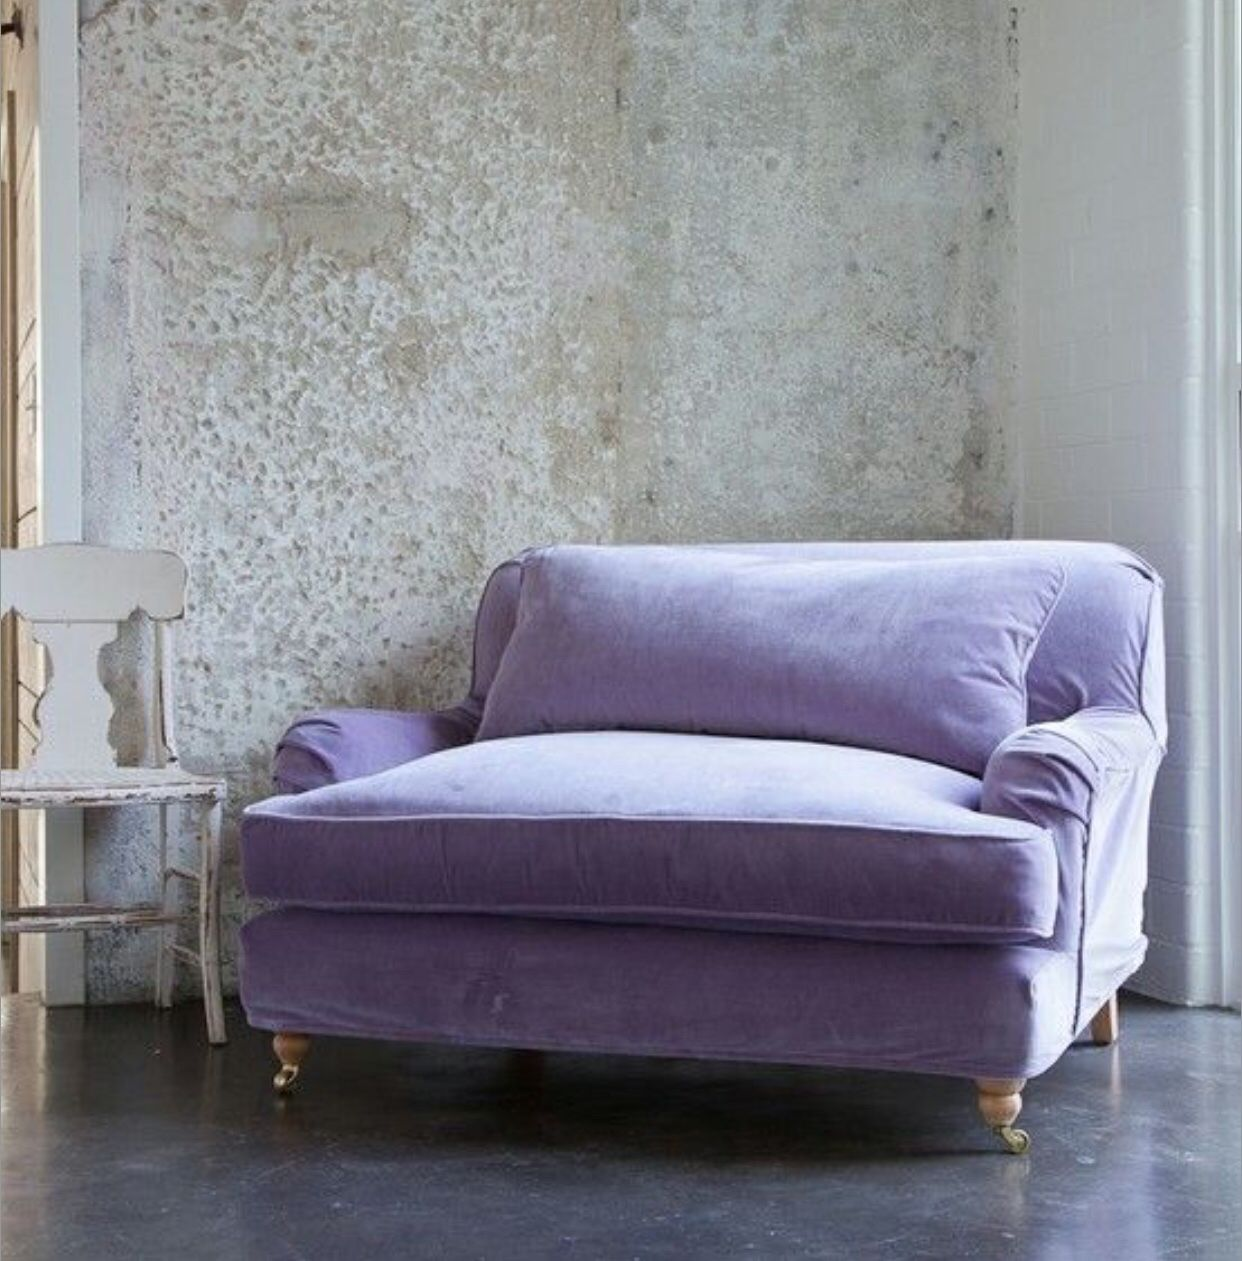 Lilac Loveseat. Lavender, Violet, Purple, Aubergine, Velvet, Sofa, Couch,  Chair, Gustavian, Swedish Rococo, Furniture, Concrete, Brick Modern, Vintage